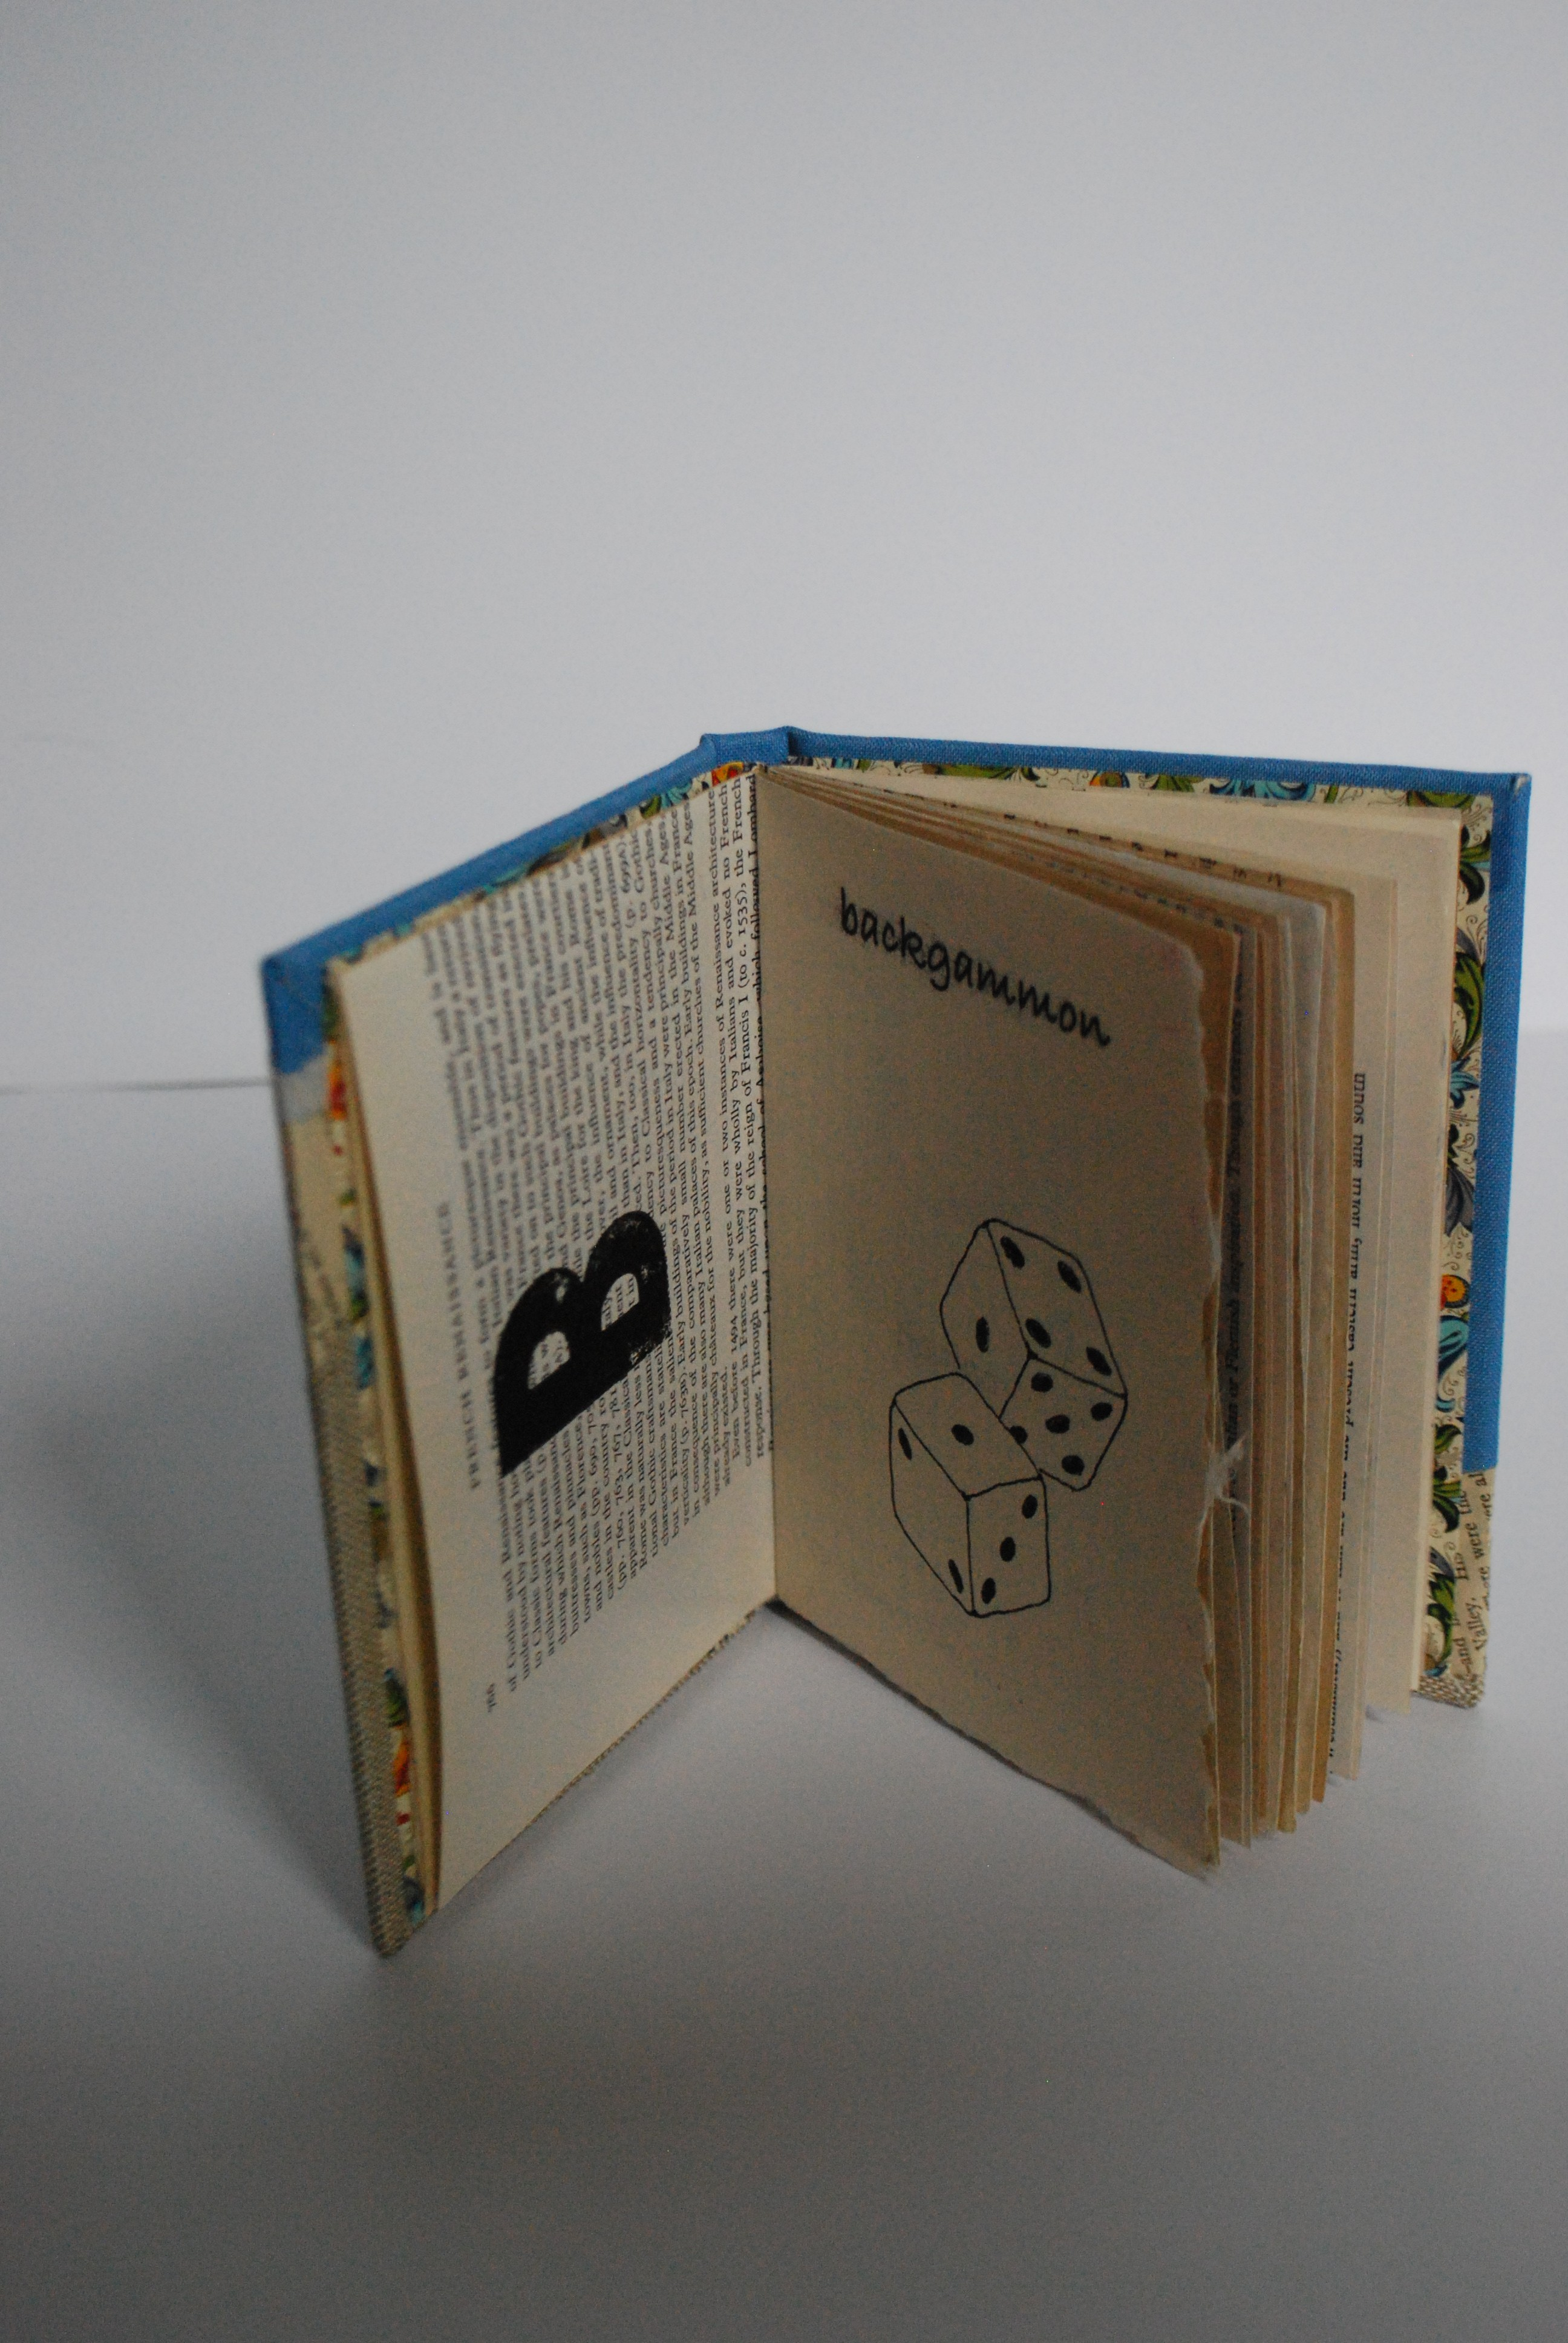 """Book opened to """"B"""" showing dice image and text """"backgammon"""""""